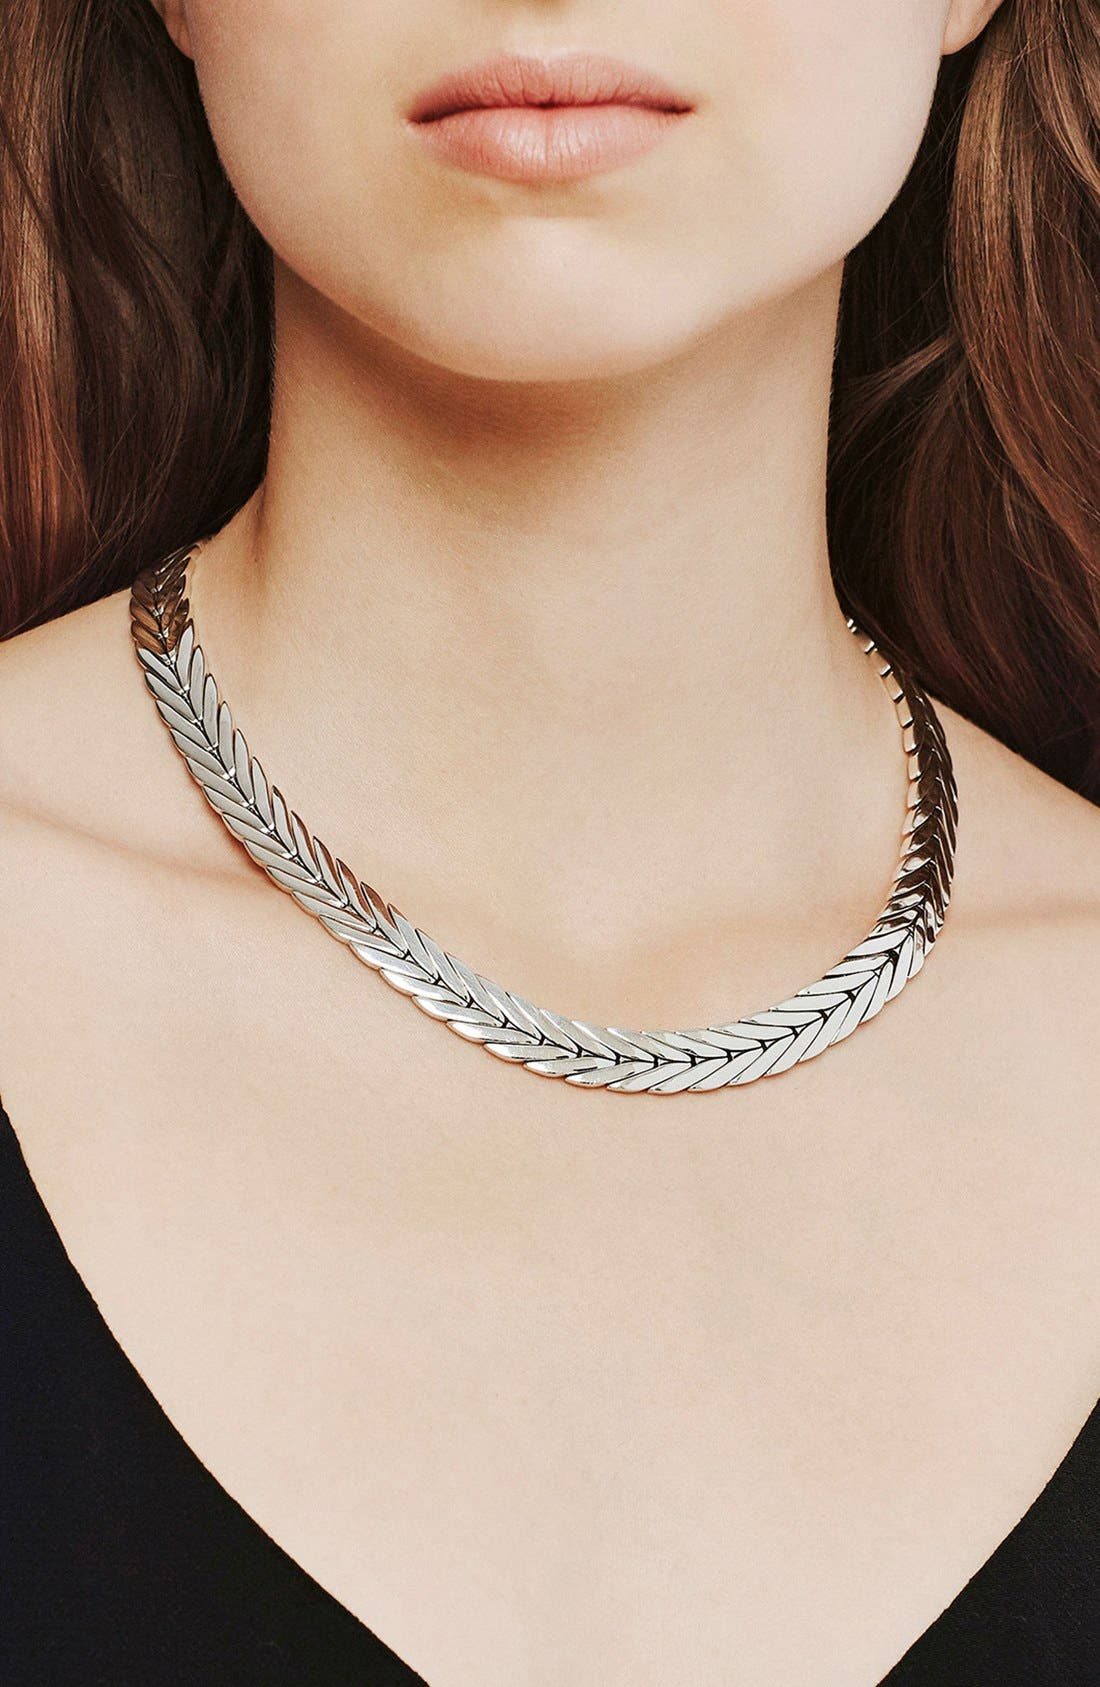 'Classic Chain' Chain Collar Necklace,                             Alternate thumbnail 2, color,                             Silver